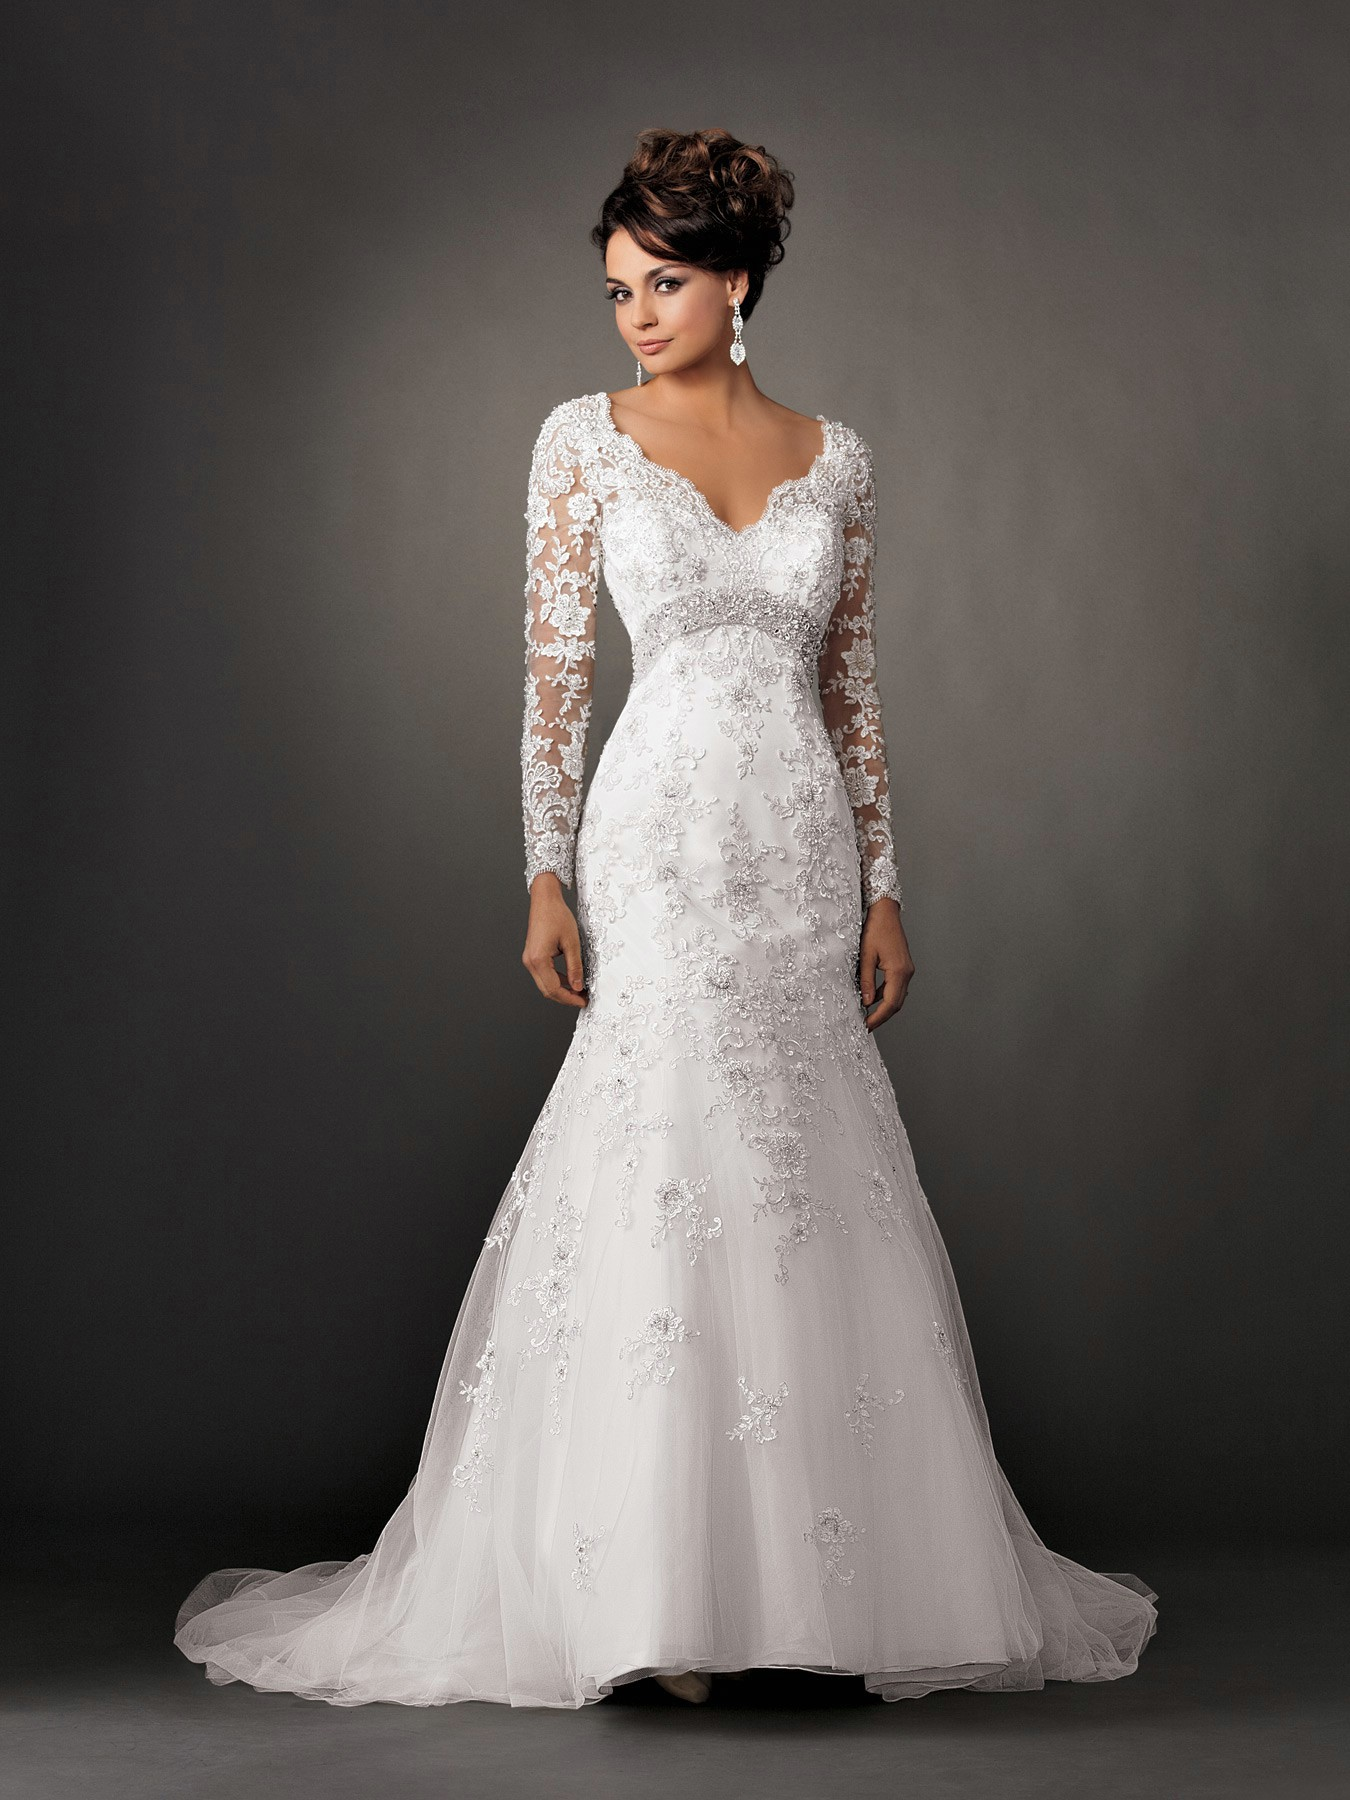 Bridal Lace Wedding Dresses With Long Sleeves 95